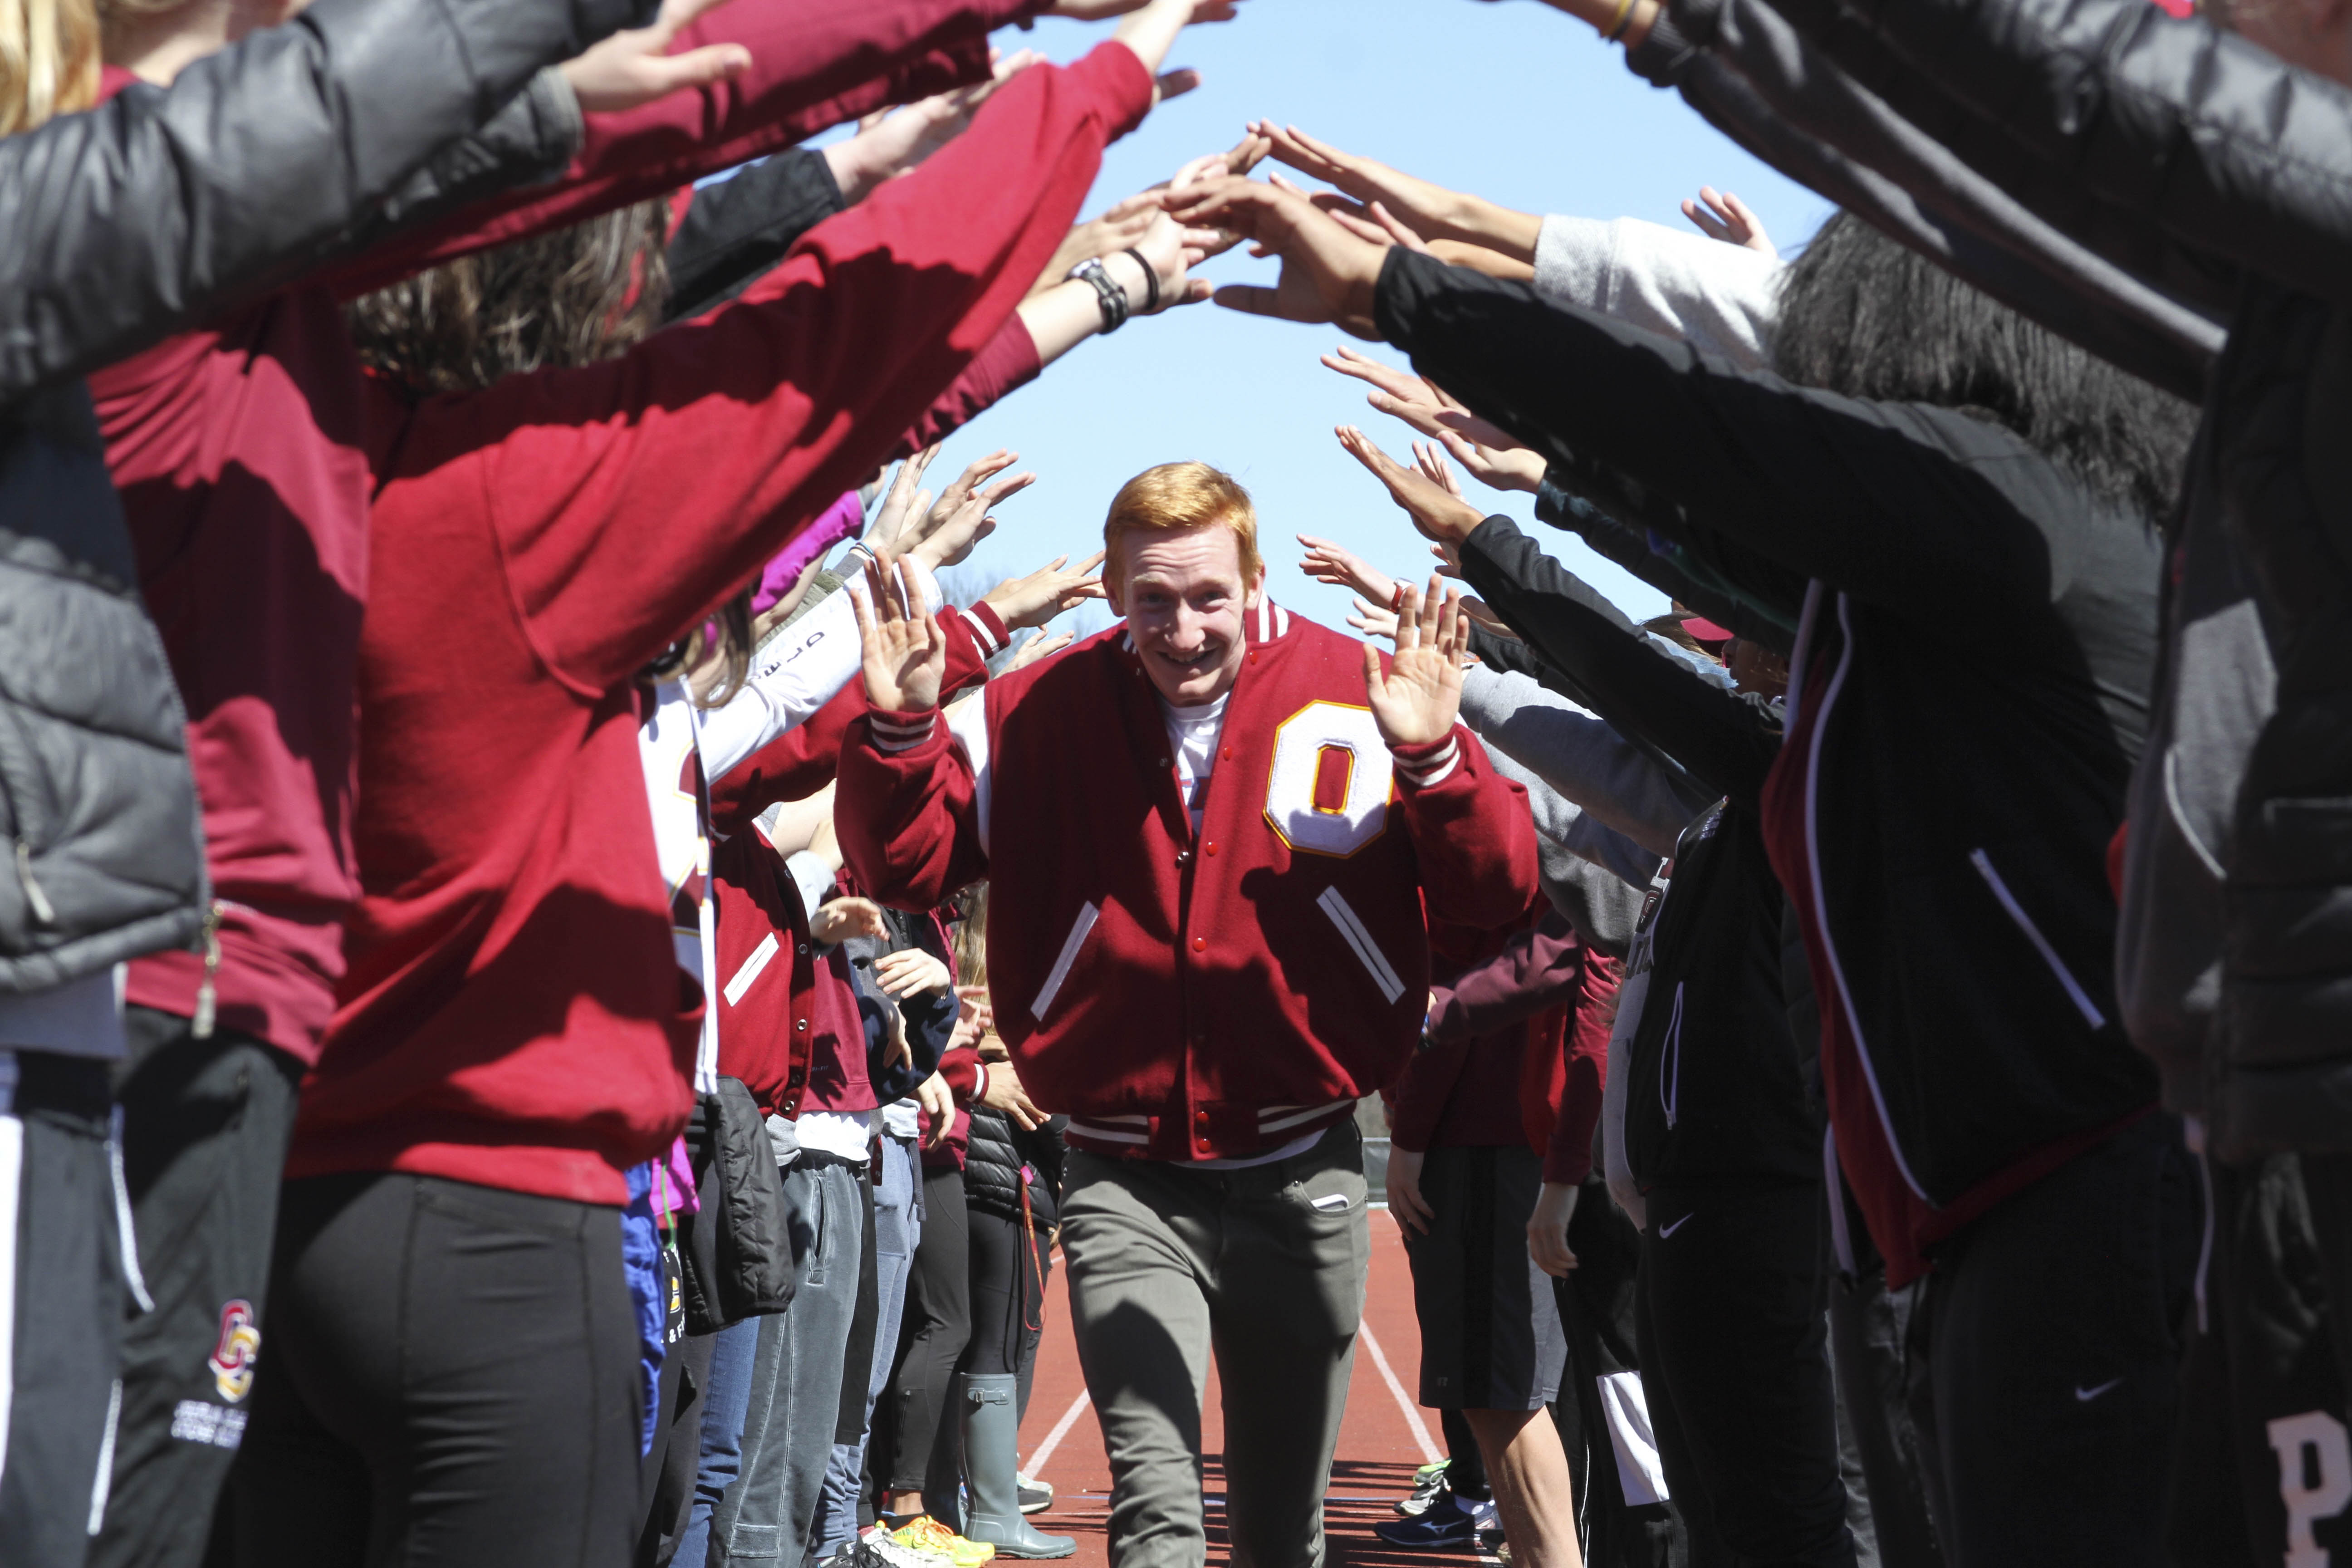 Senior Bradley Hamilton celebrates by running through a crowd of teammates at the Bob Kahn Invitational last Saturday. The event honored all senior members of the Yeomen and Yeowomen track and field teams.